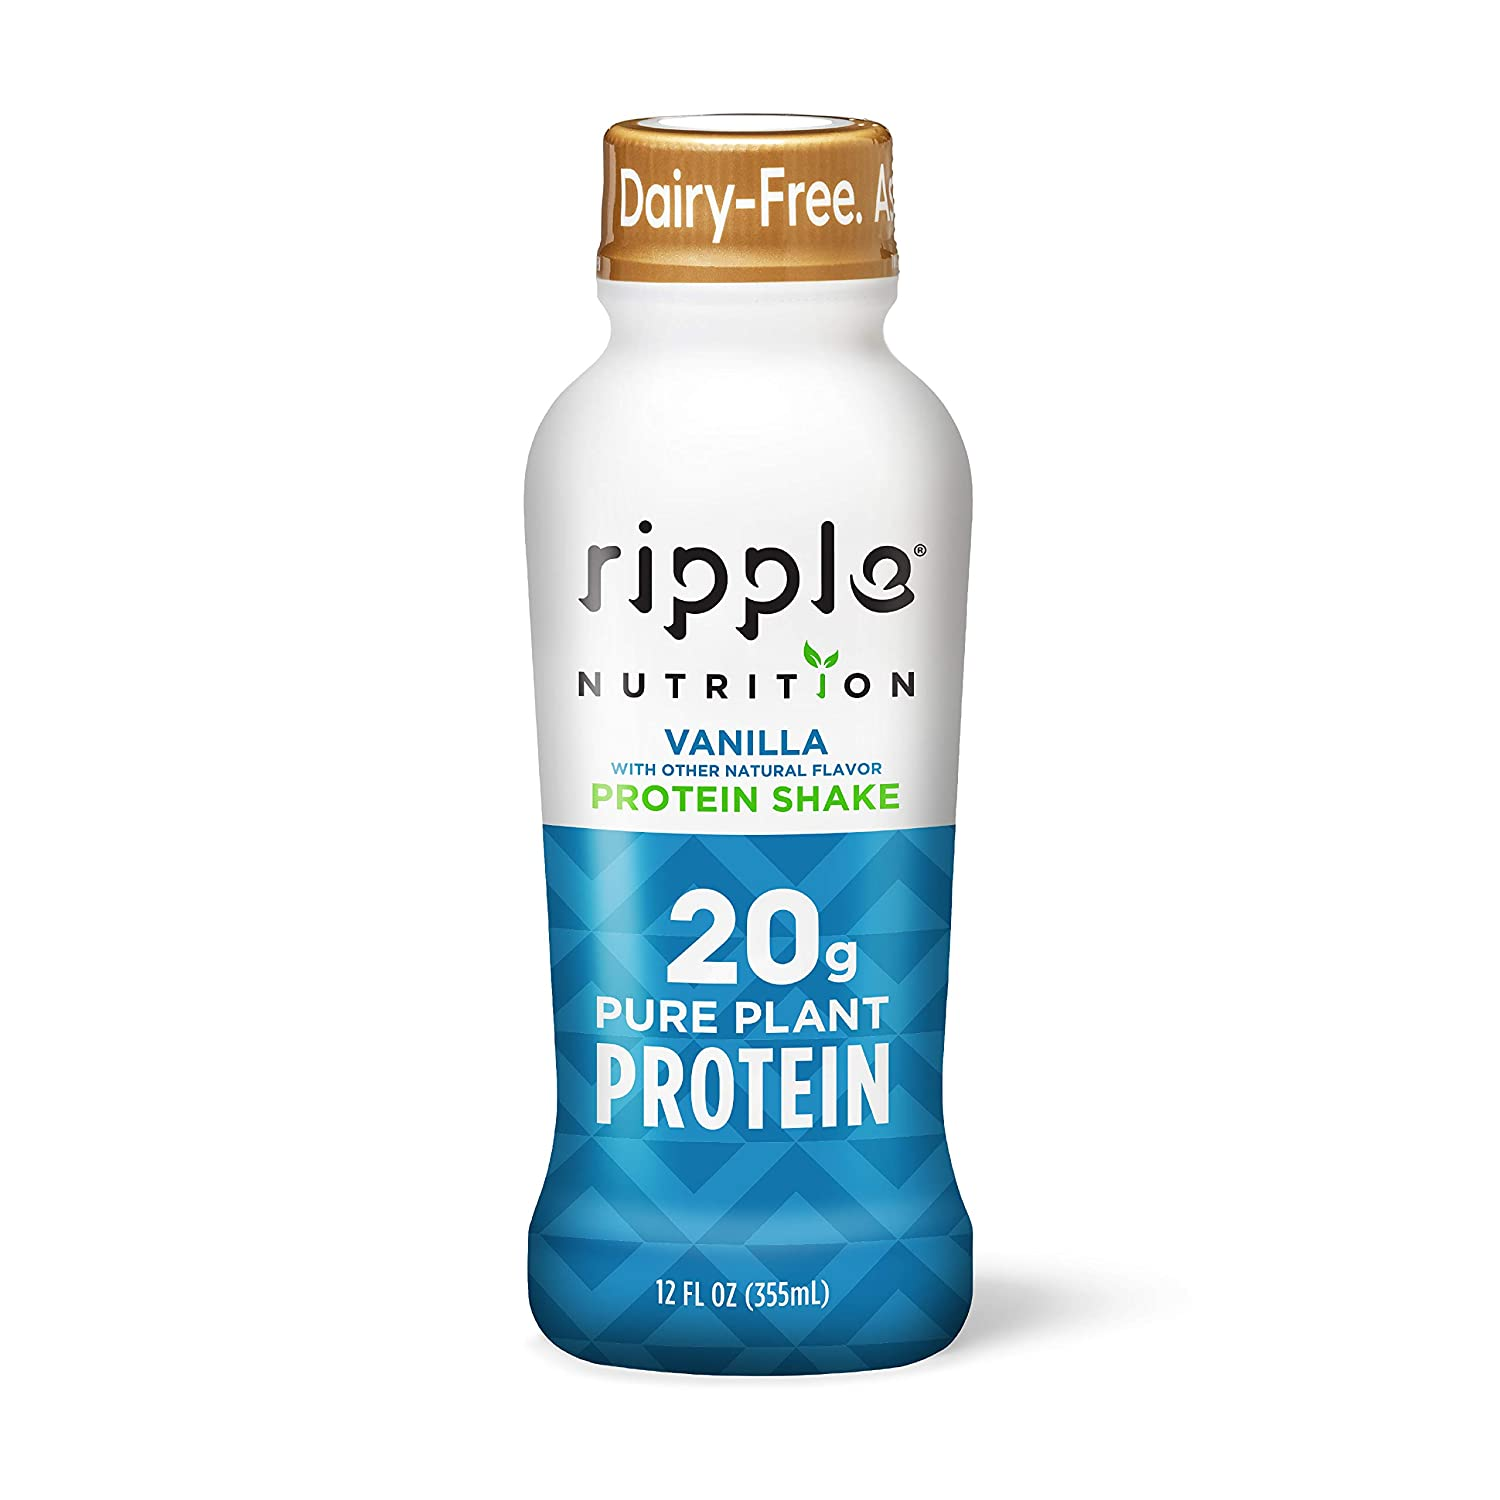 Ripple Vegan Protein Shake, Vanilla | 20g Nutritious Plant Based Pea Protein in Ready to Drink Bottles | Non-GMO, Non-Dairy, Soy Free, Gluten Free, Lactose Free | Shelf Stable |12 Fl Oz (12 Pack)